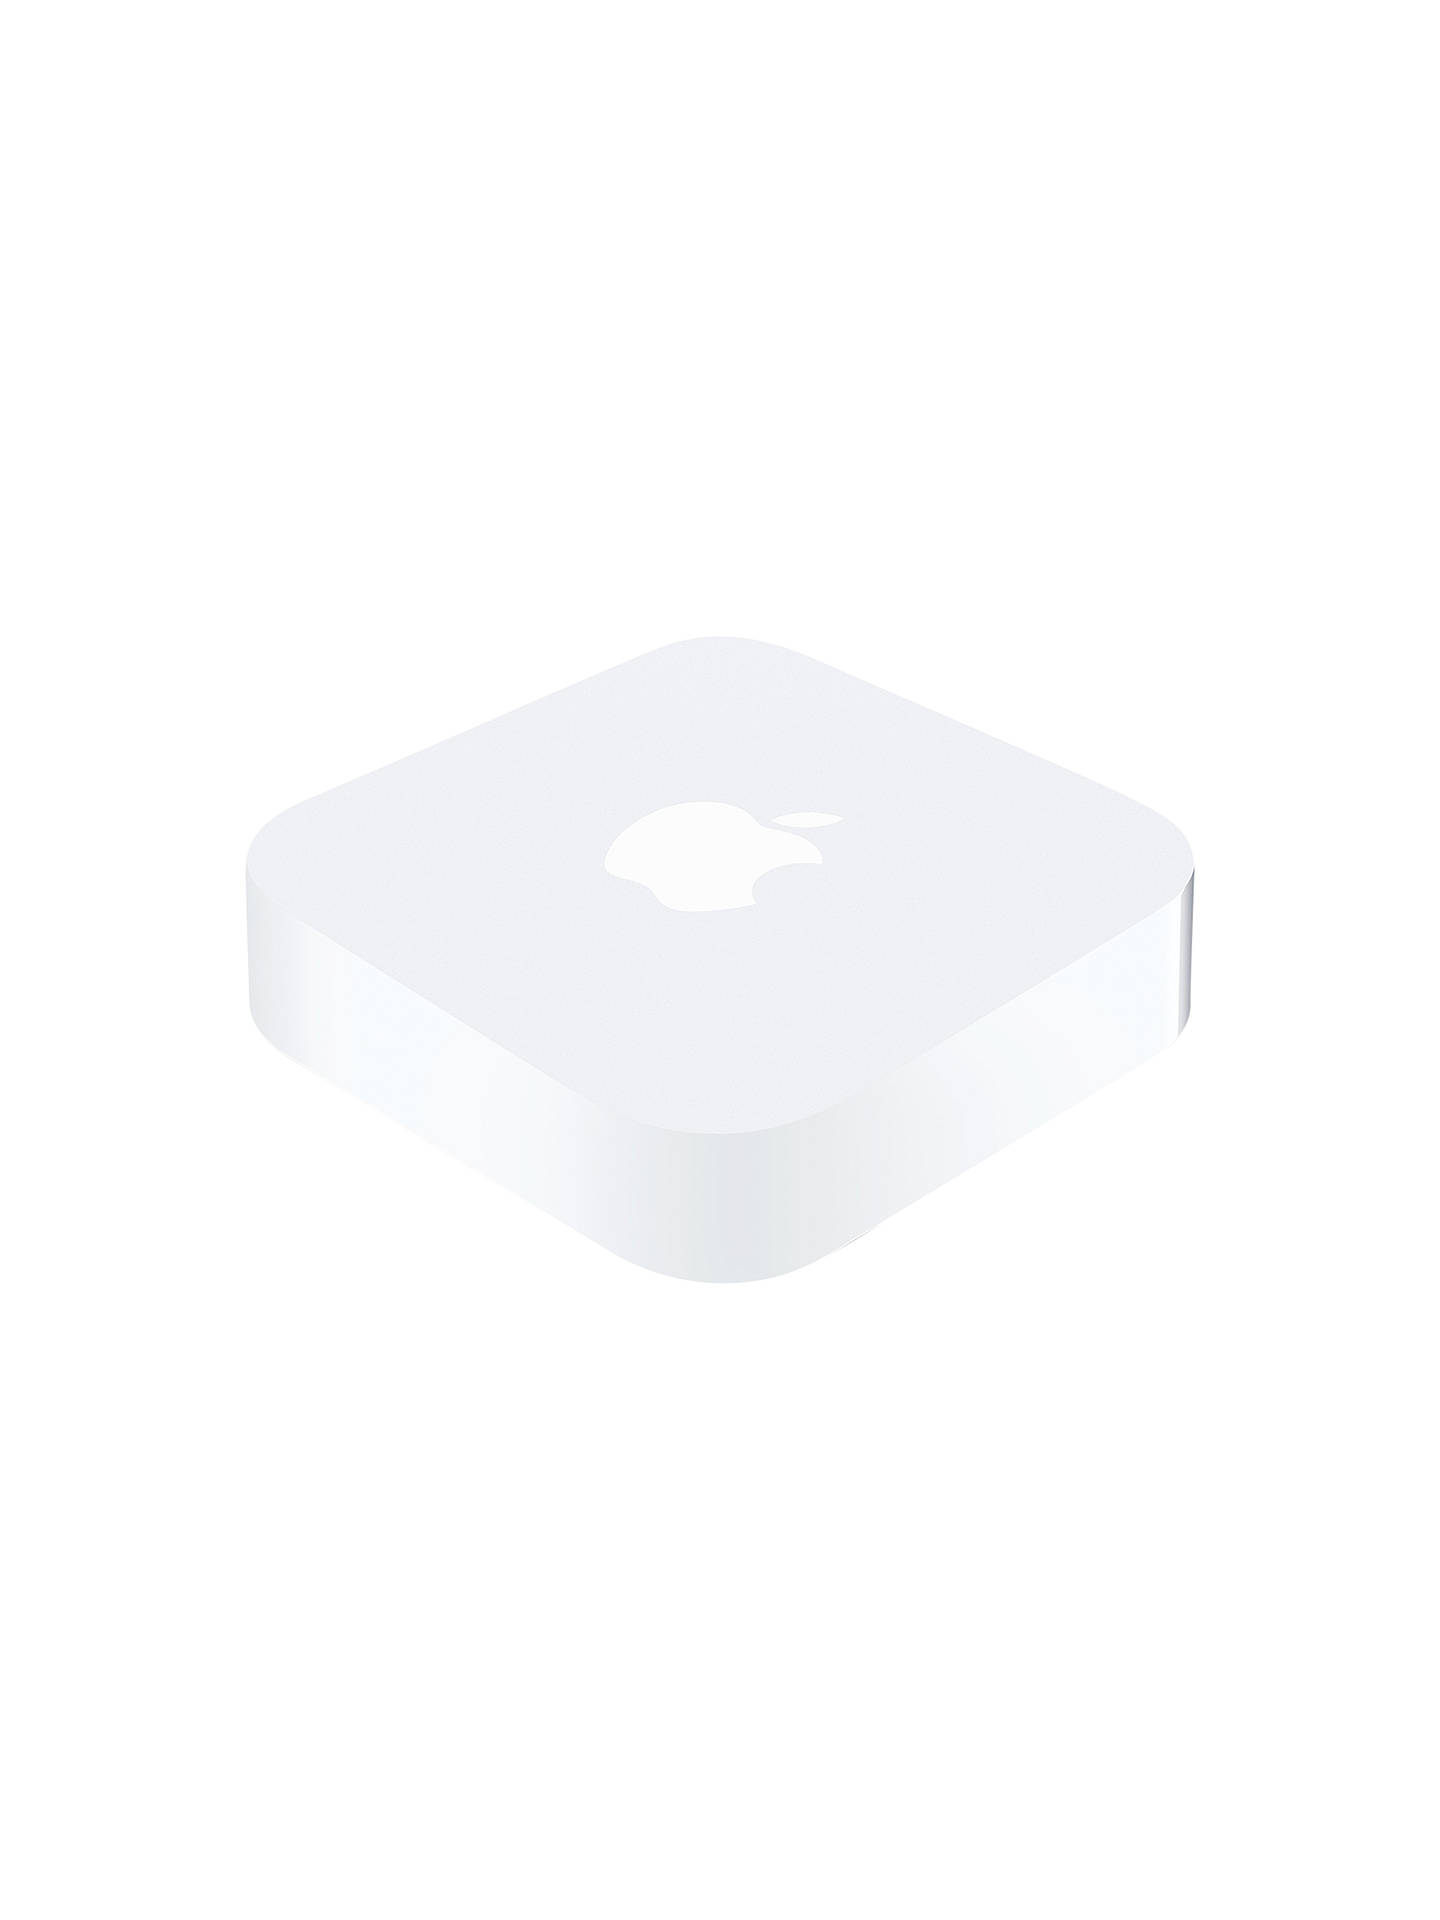 Apple Airport Express Base Station Mc414b A At John Lewis Partners Buyapple Online